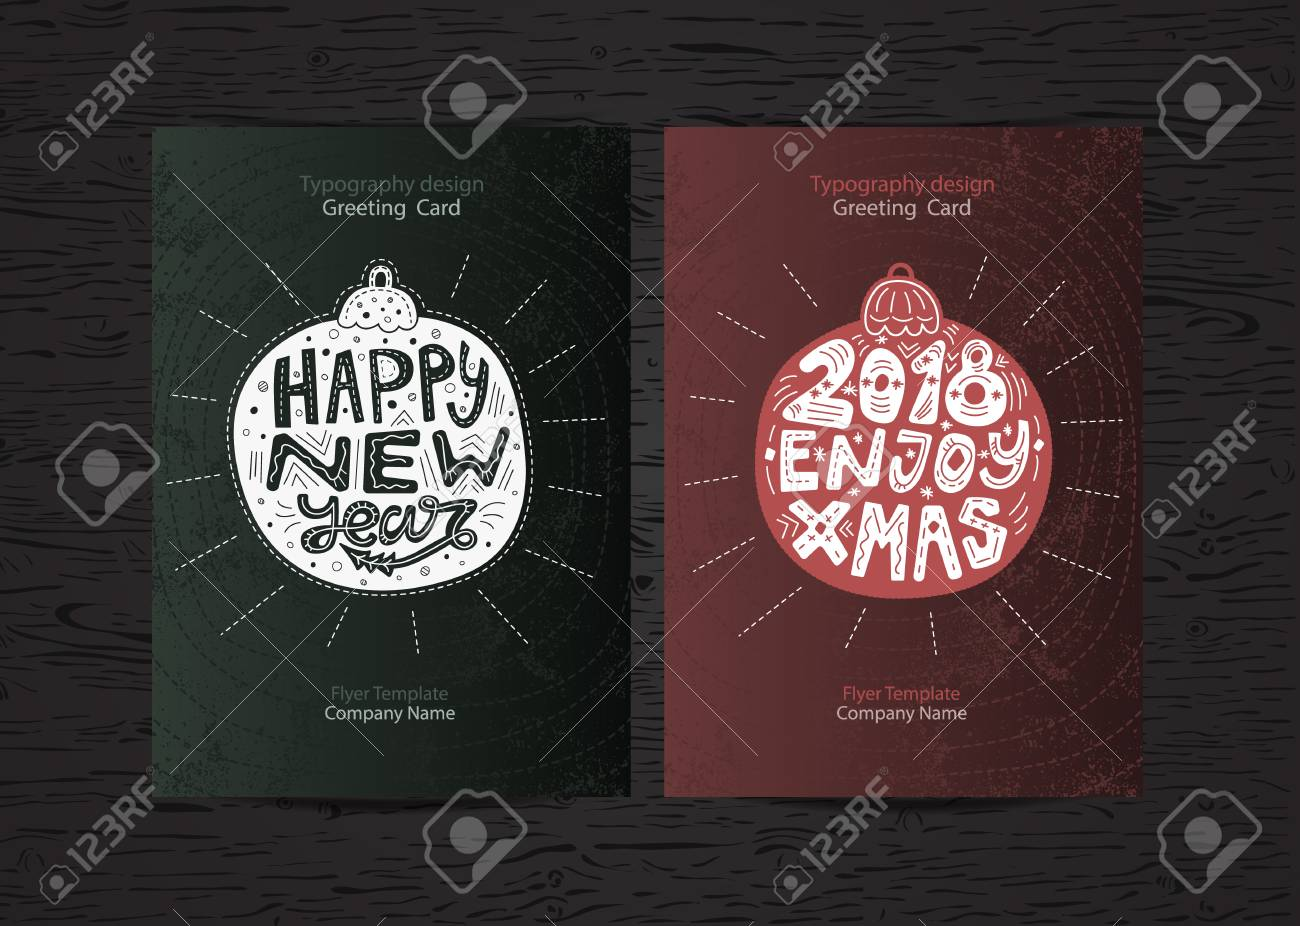 New Year Brochure Template | Set Christmas Holiday Greeting Card Design 2018 New Year Flyer